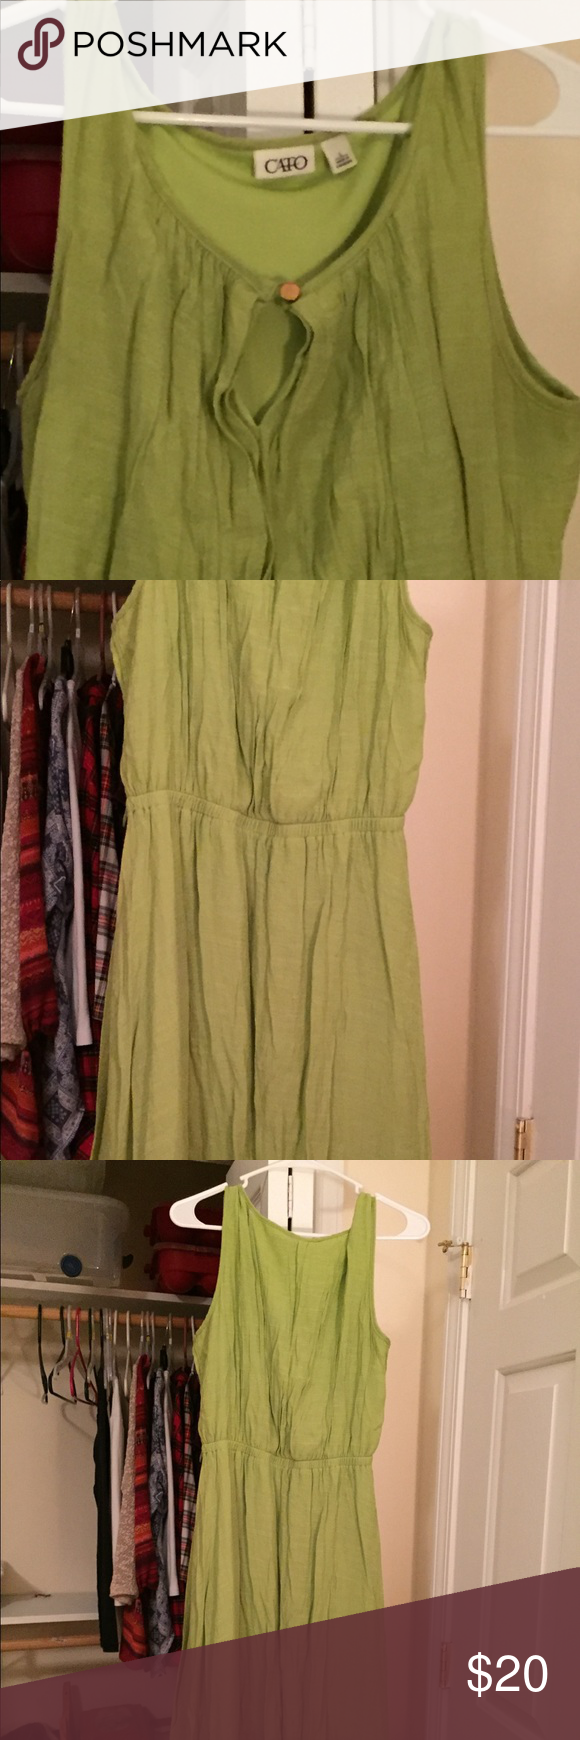 Green dress. Size large green dress from catos. Wore a couple times. Good condition. Cato Dresses